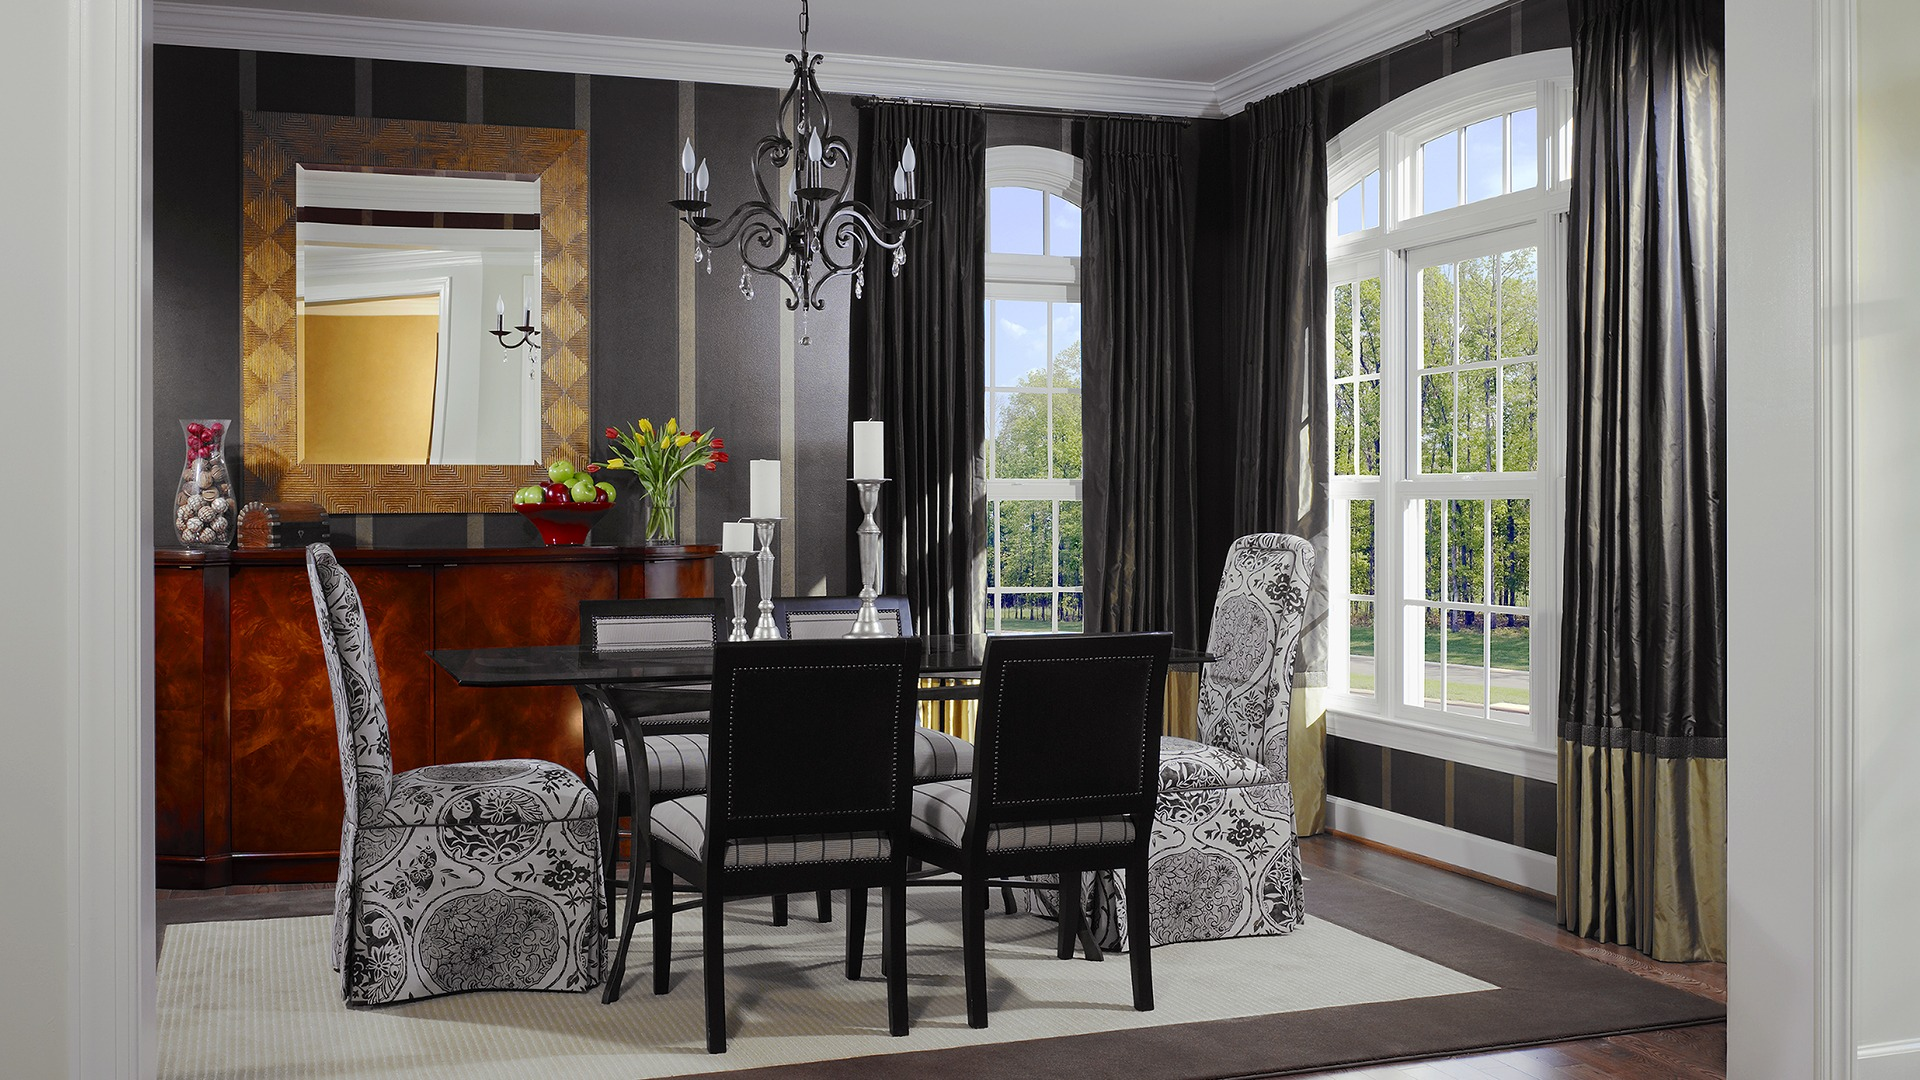 The Dining Room in the Ashcroft model in Brambleton. Some options shown.